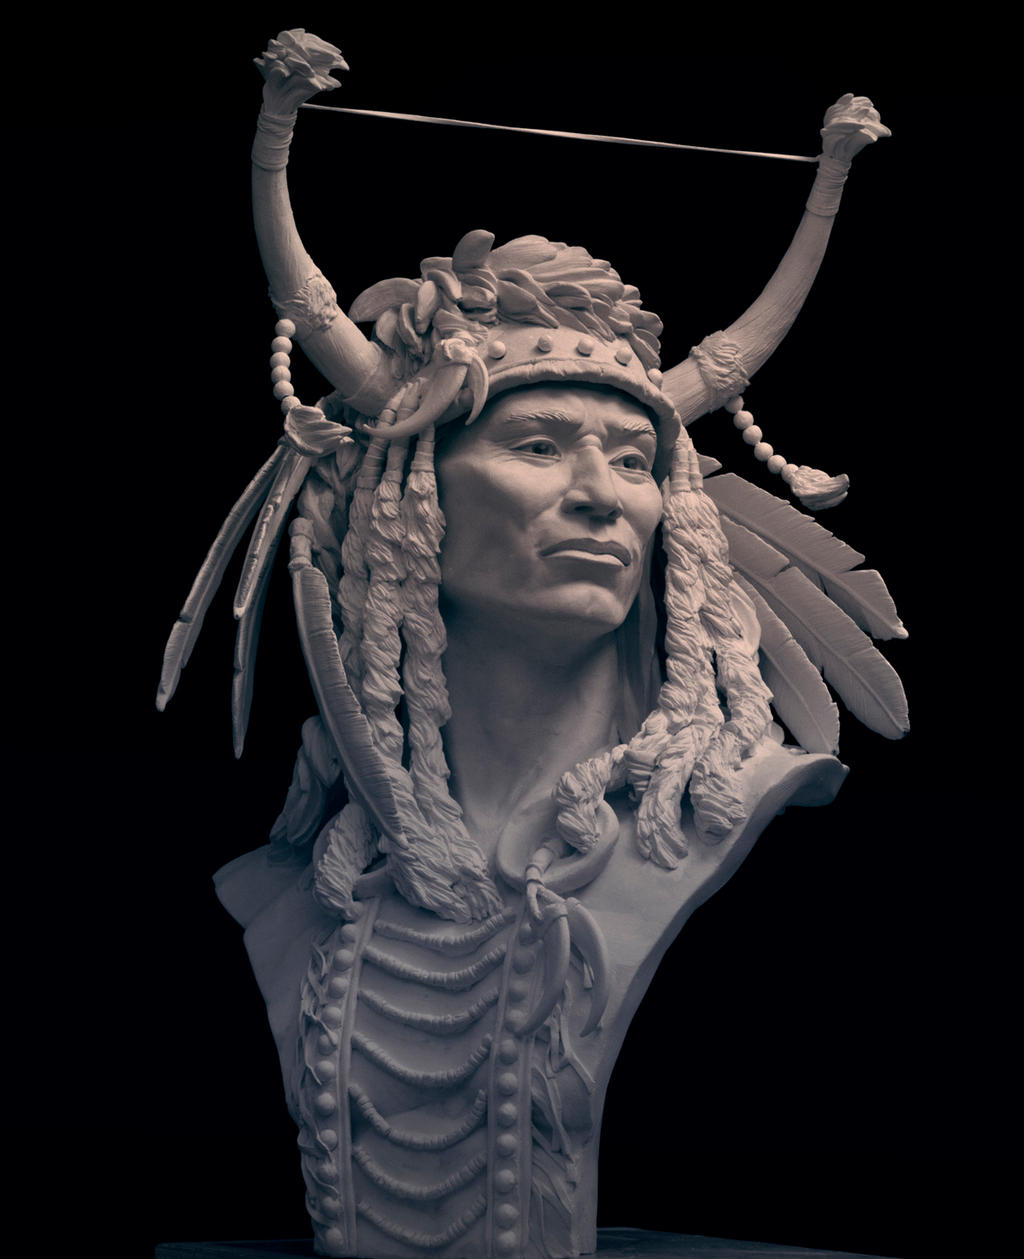 warrior with splithorn warbonnet-2 by renemarcel27